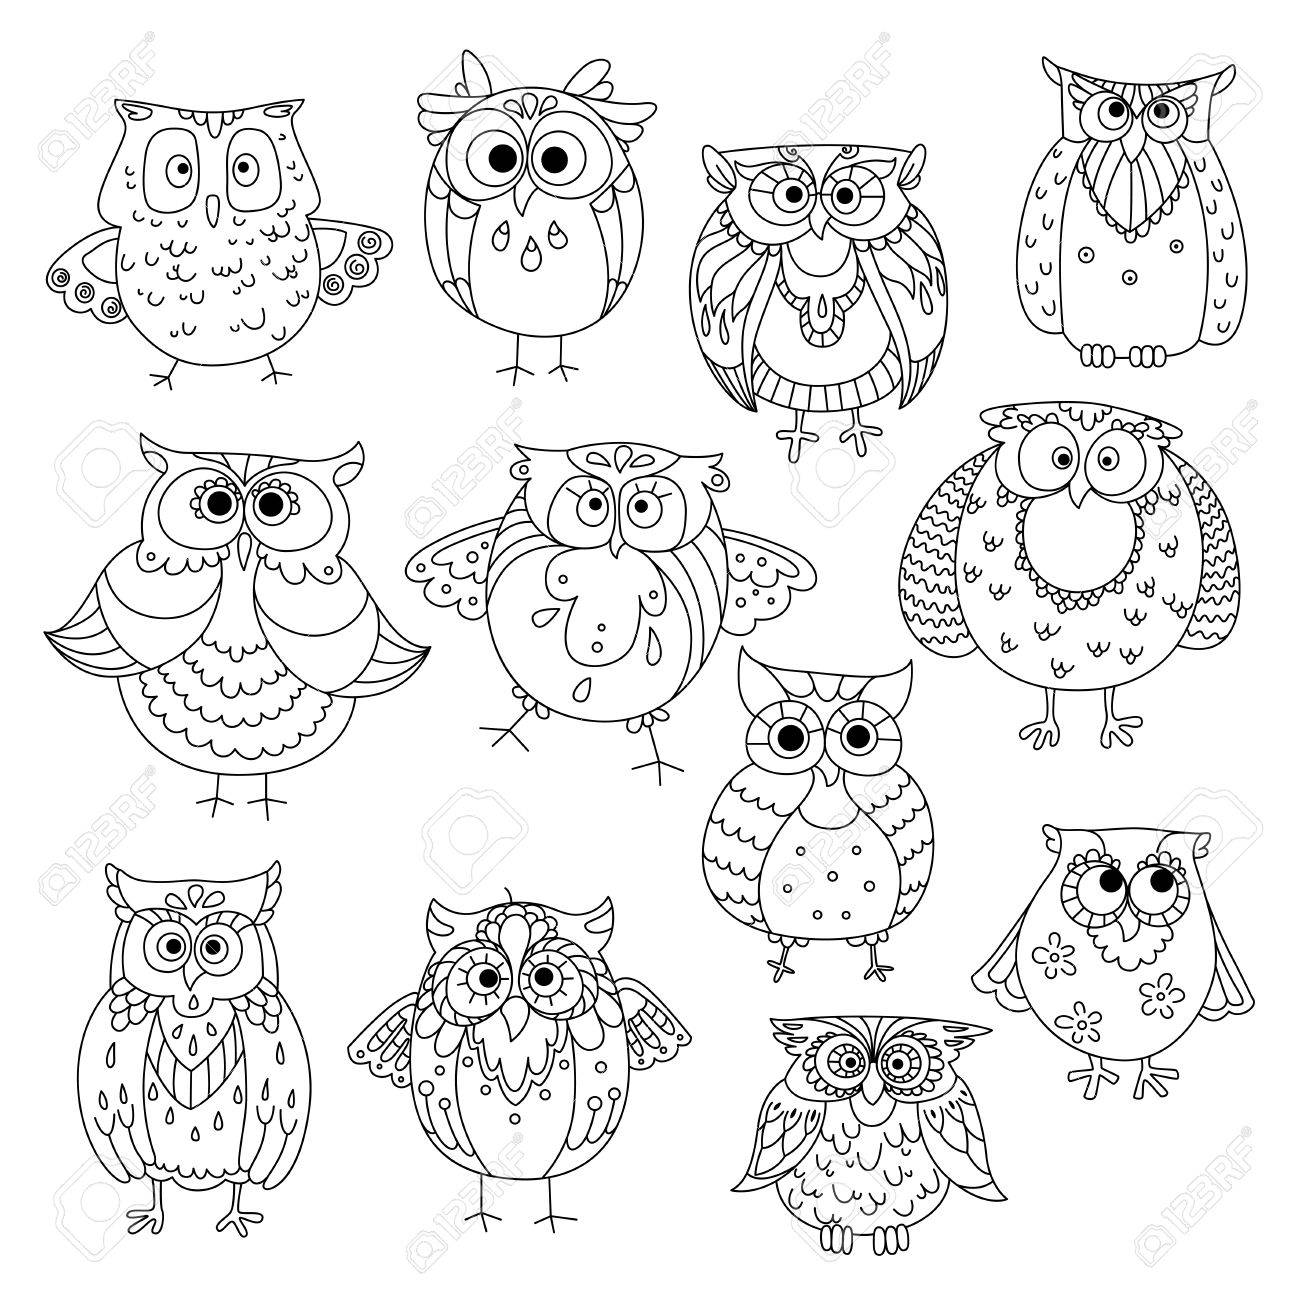 1300x1300 Decorative Sketches Of Cute Owls With Young Owlets, Wise Horned